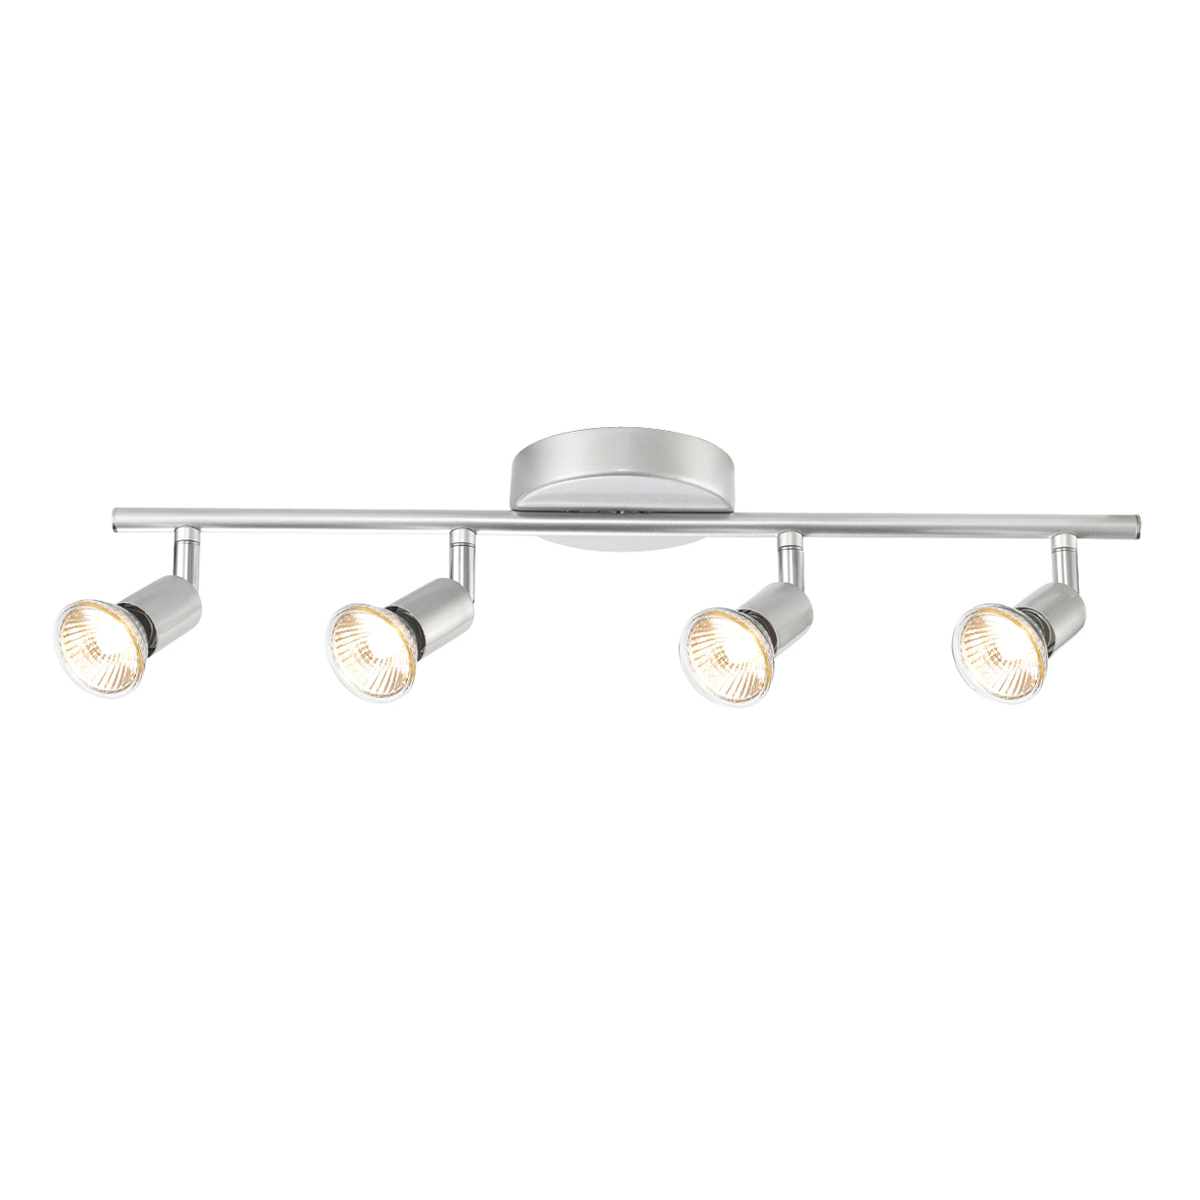 Monorail Track Lighting Kits Edge What Is Indoor Wiring Diagram Diagrams